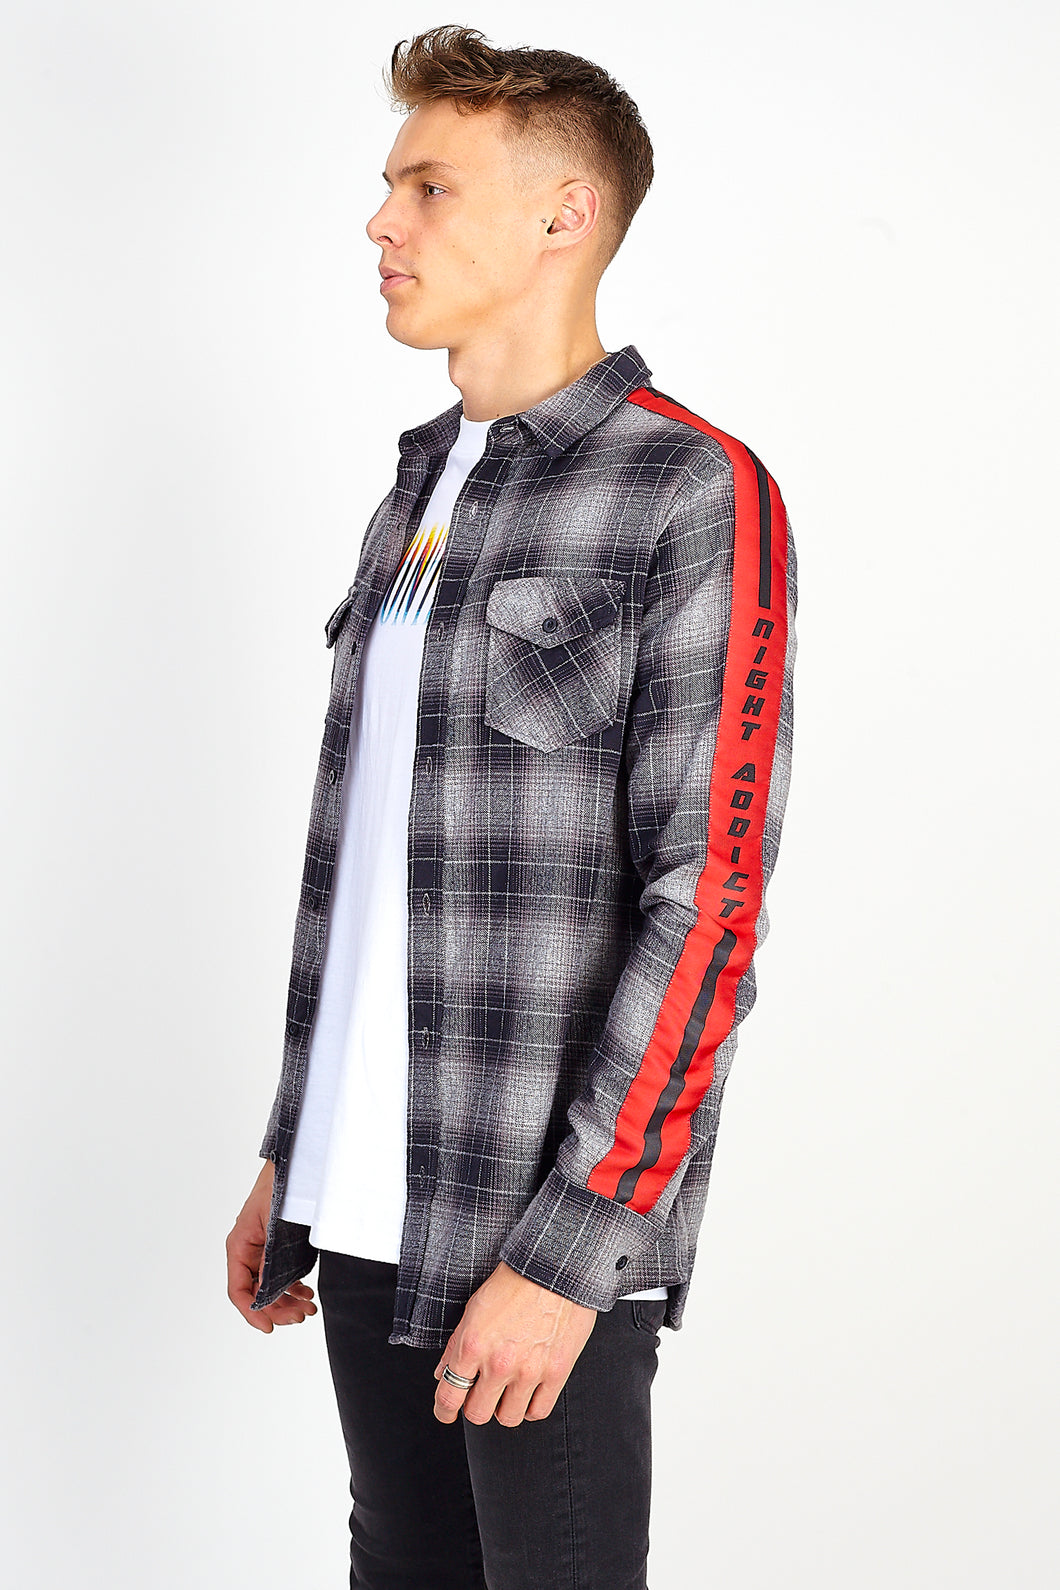 WOVEN CHECK SHIRT - RED SIDE TAPE